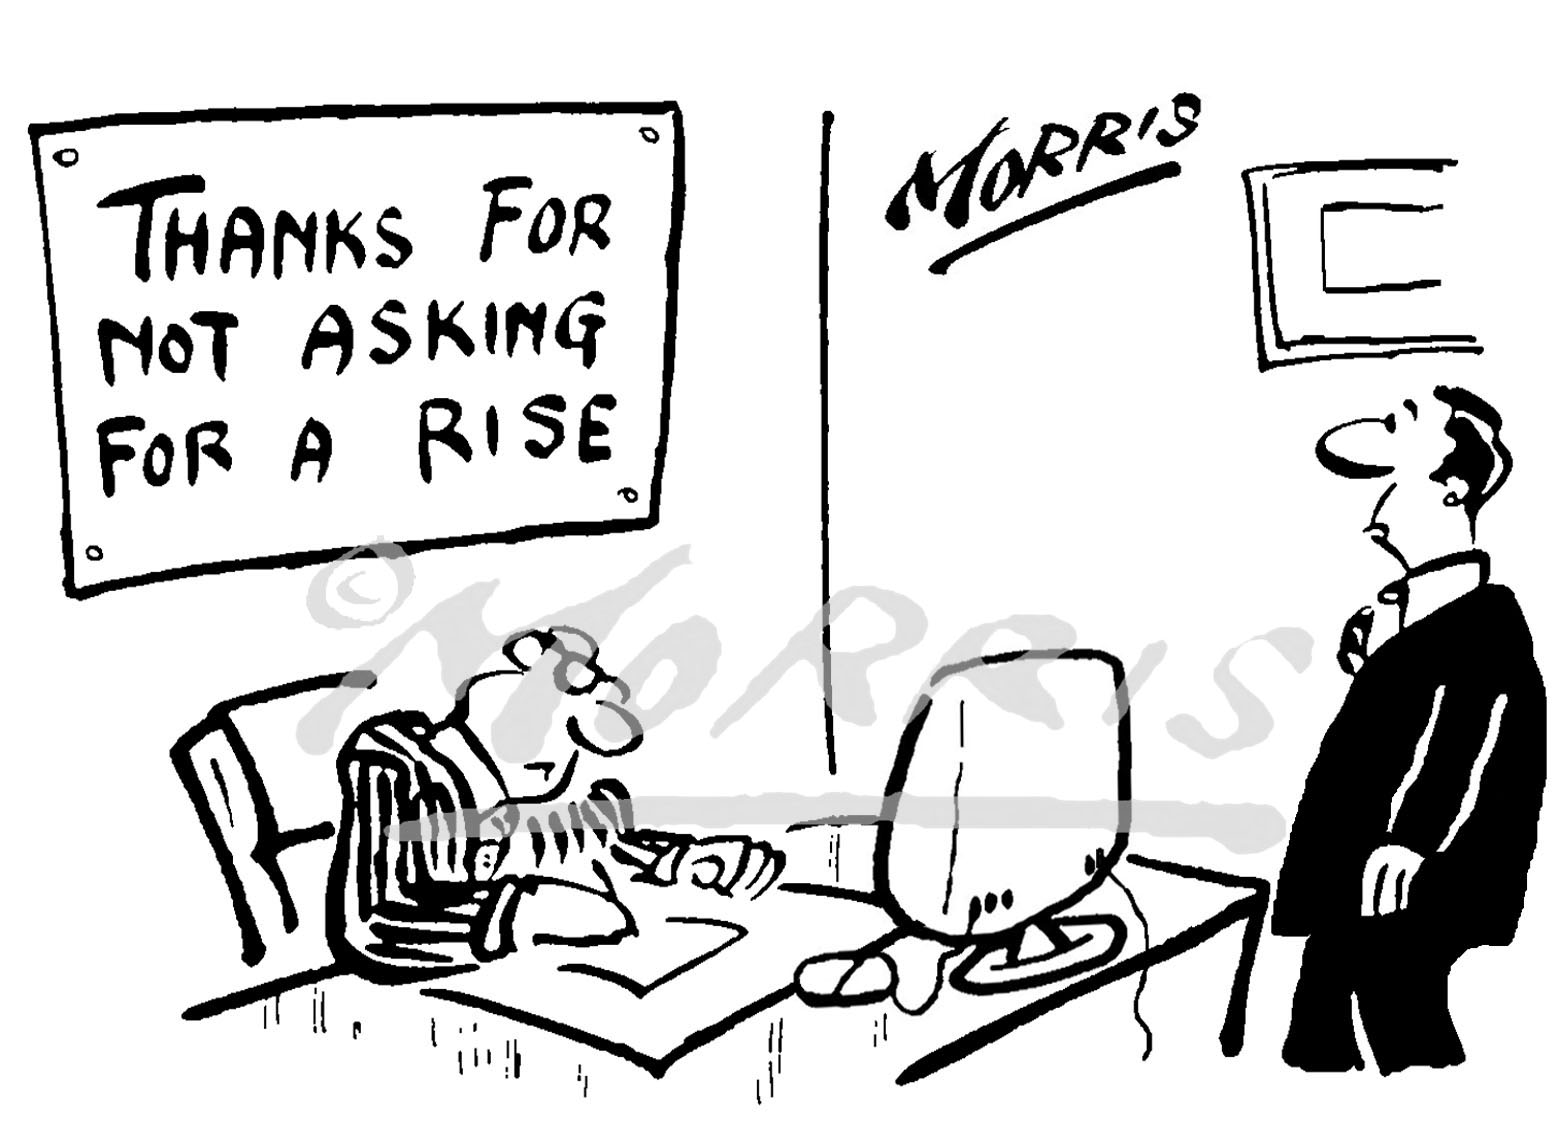 Manager Employee Wage rise cartoon – Ref: 0296bw